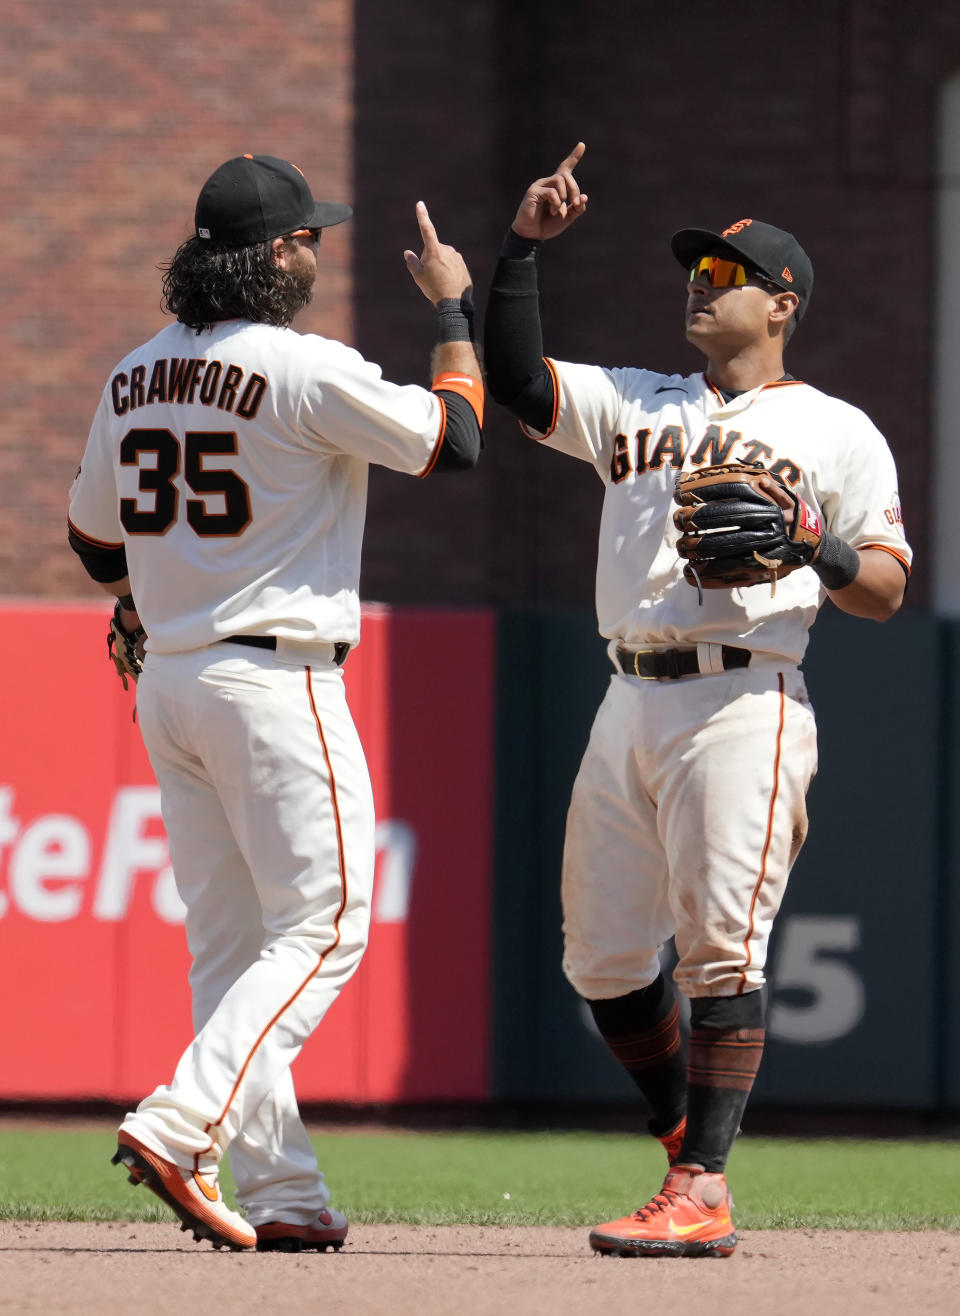 San Francisco Giants shortstop Brandon Crawford (35) and second baseman Donovan Solano celebrate the team's 5-0 victory over the Los Angeles Dodgers in a baseball game Thursday, July 29, 2021, in San Francisco. (AP Photo/Tony Avelar)